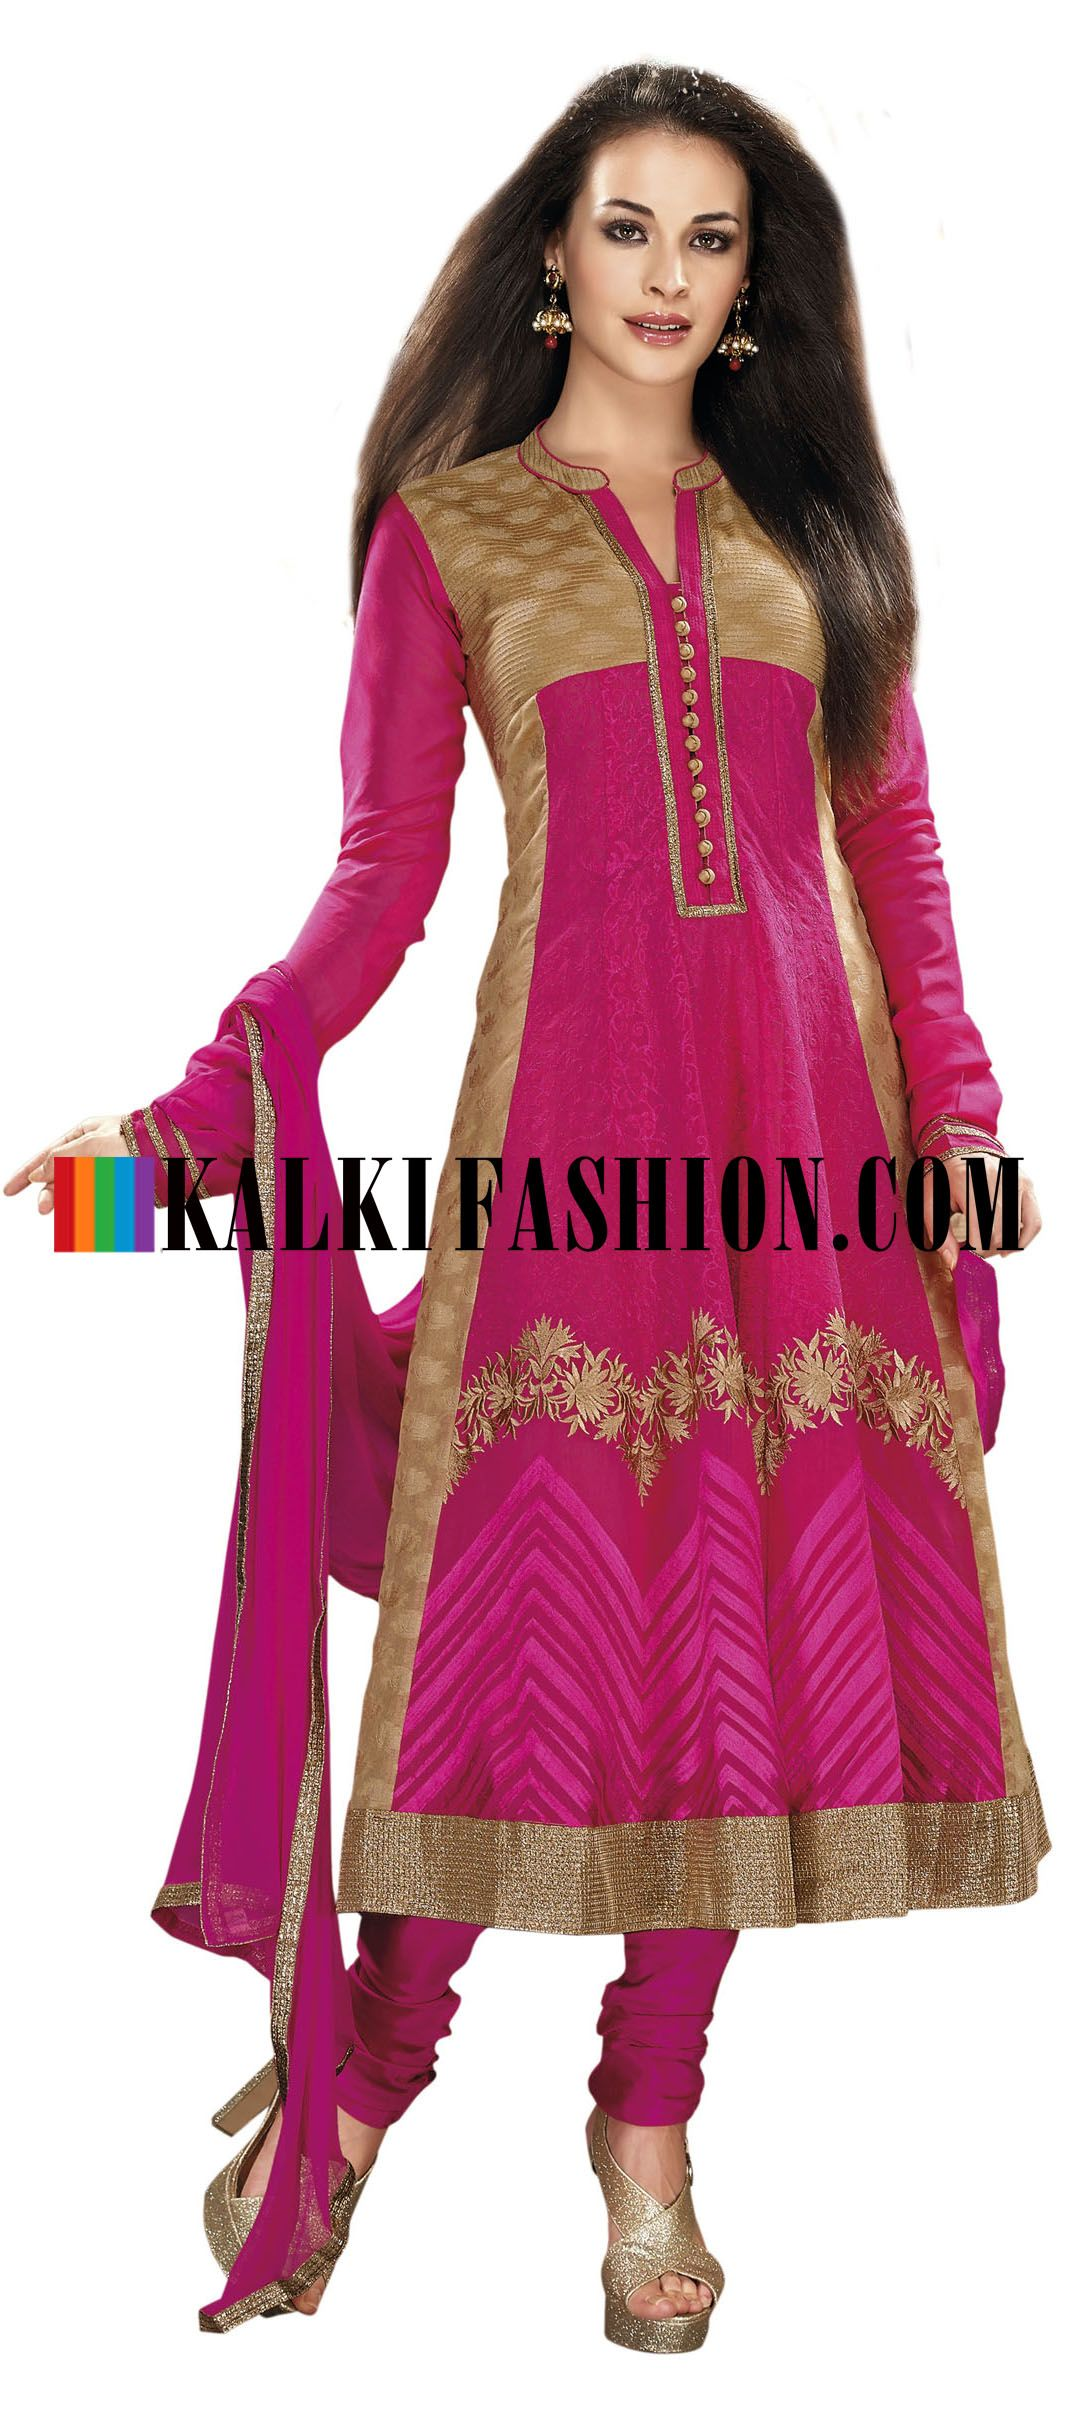 Buy Online from the link below. We ship worldwide (Free Shipping over US$100) http://www.kalkifashion.com/anarkali-suit-in-pink-and-beige-with-resham-embroidery.html Anarkali suit in pink and beige with resham embroidery